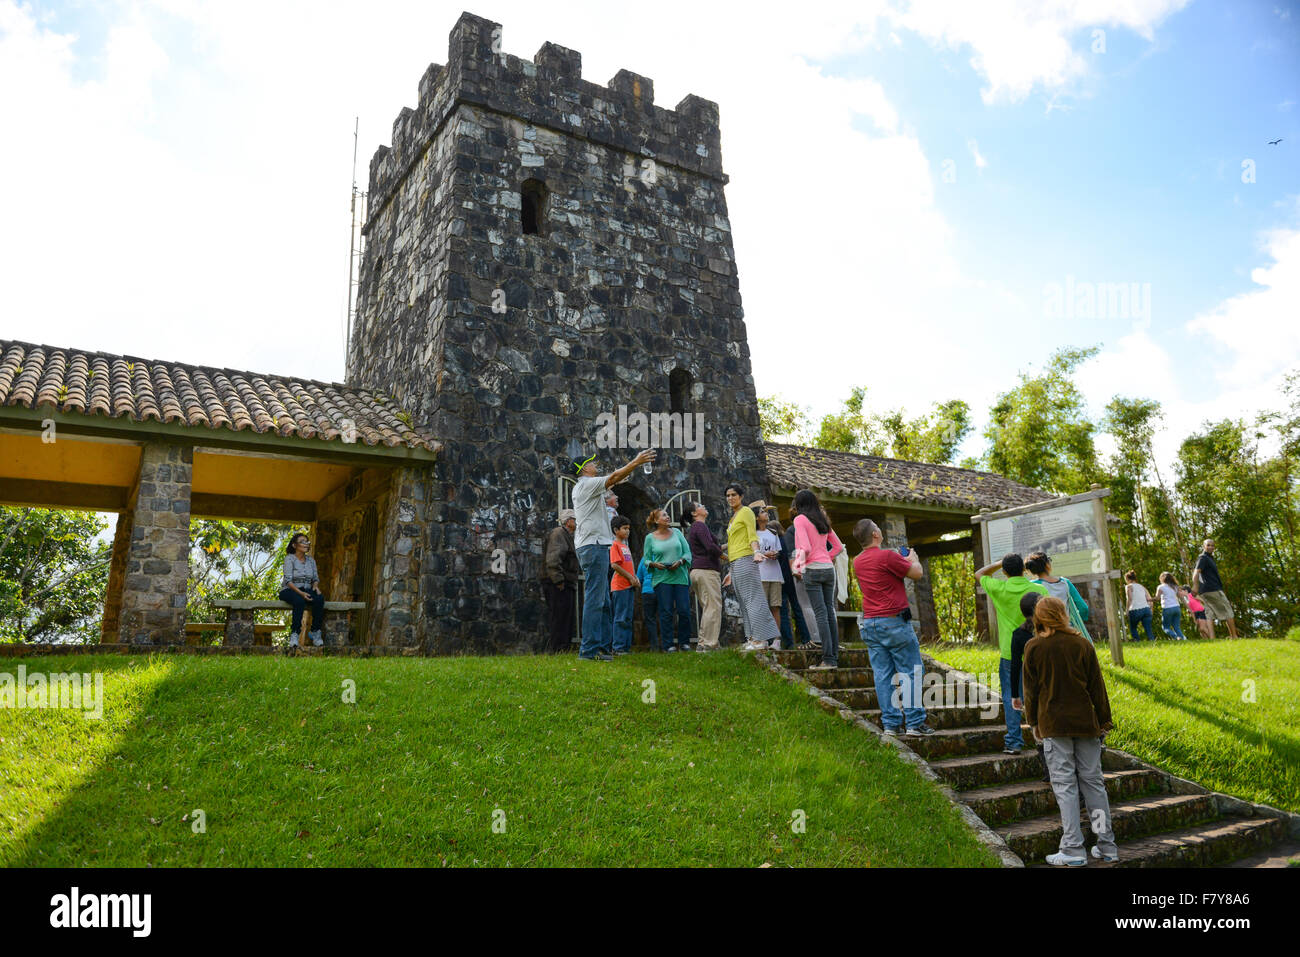 Tourists arriving at the Torre de Piedra (Stone Tower). Maricao, Puerto Rico. Caribbean Island. USA territory. - Stock Image